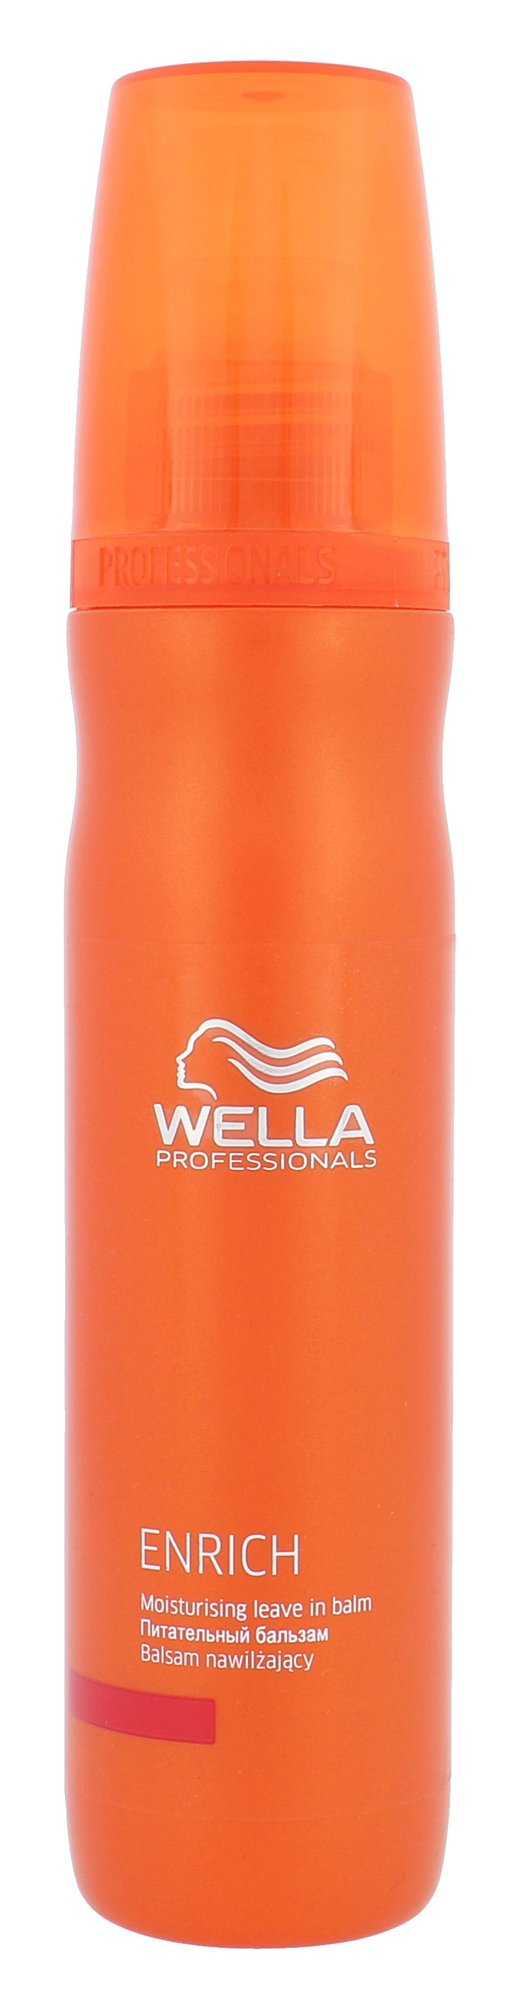 Wella Enrich Cosmetic 150ml